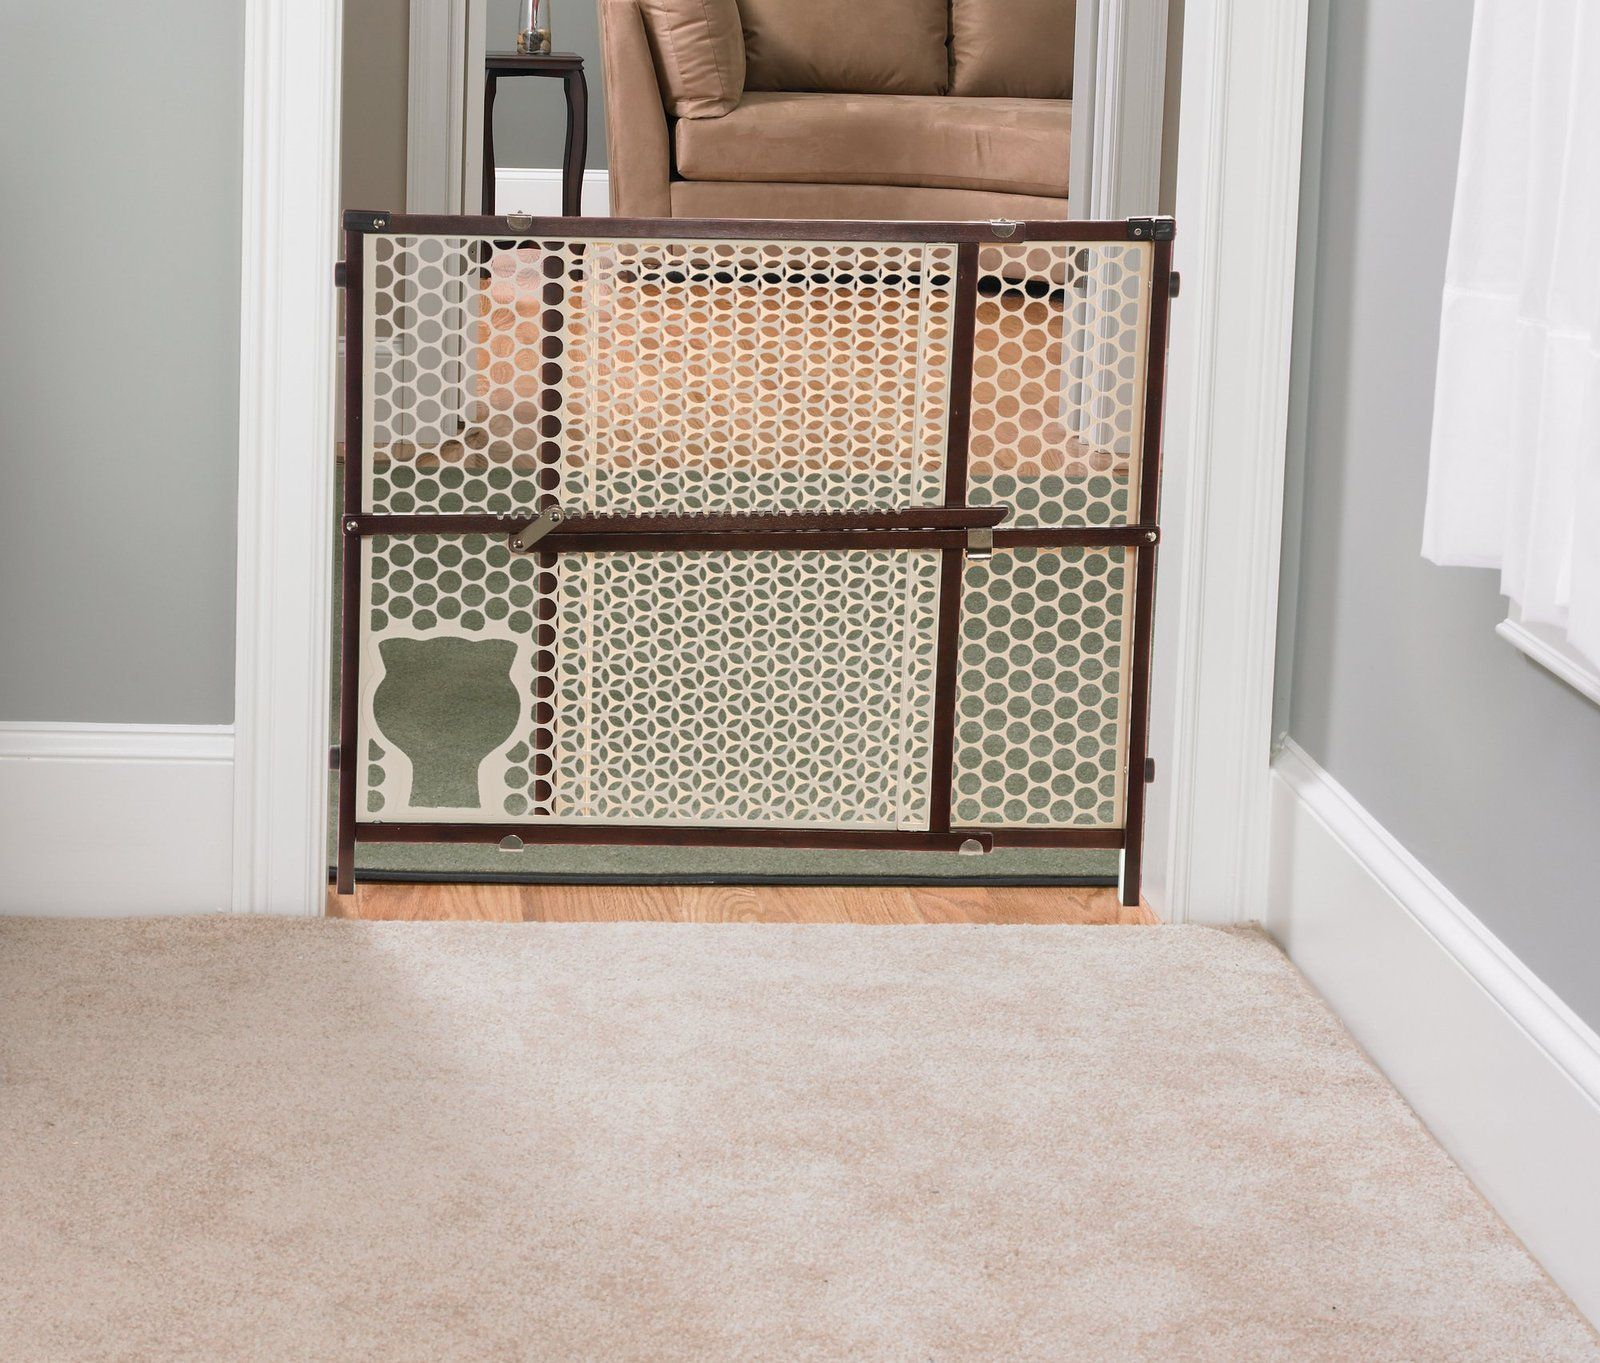 The Safety 1st Baby N Pet Gate Allows Small Pets To Pass